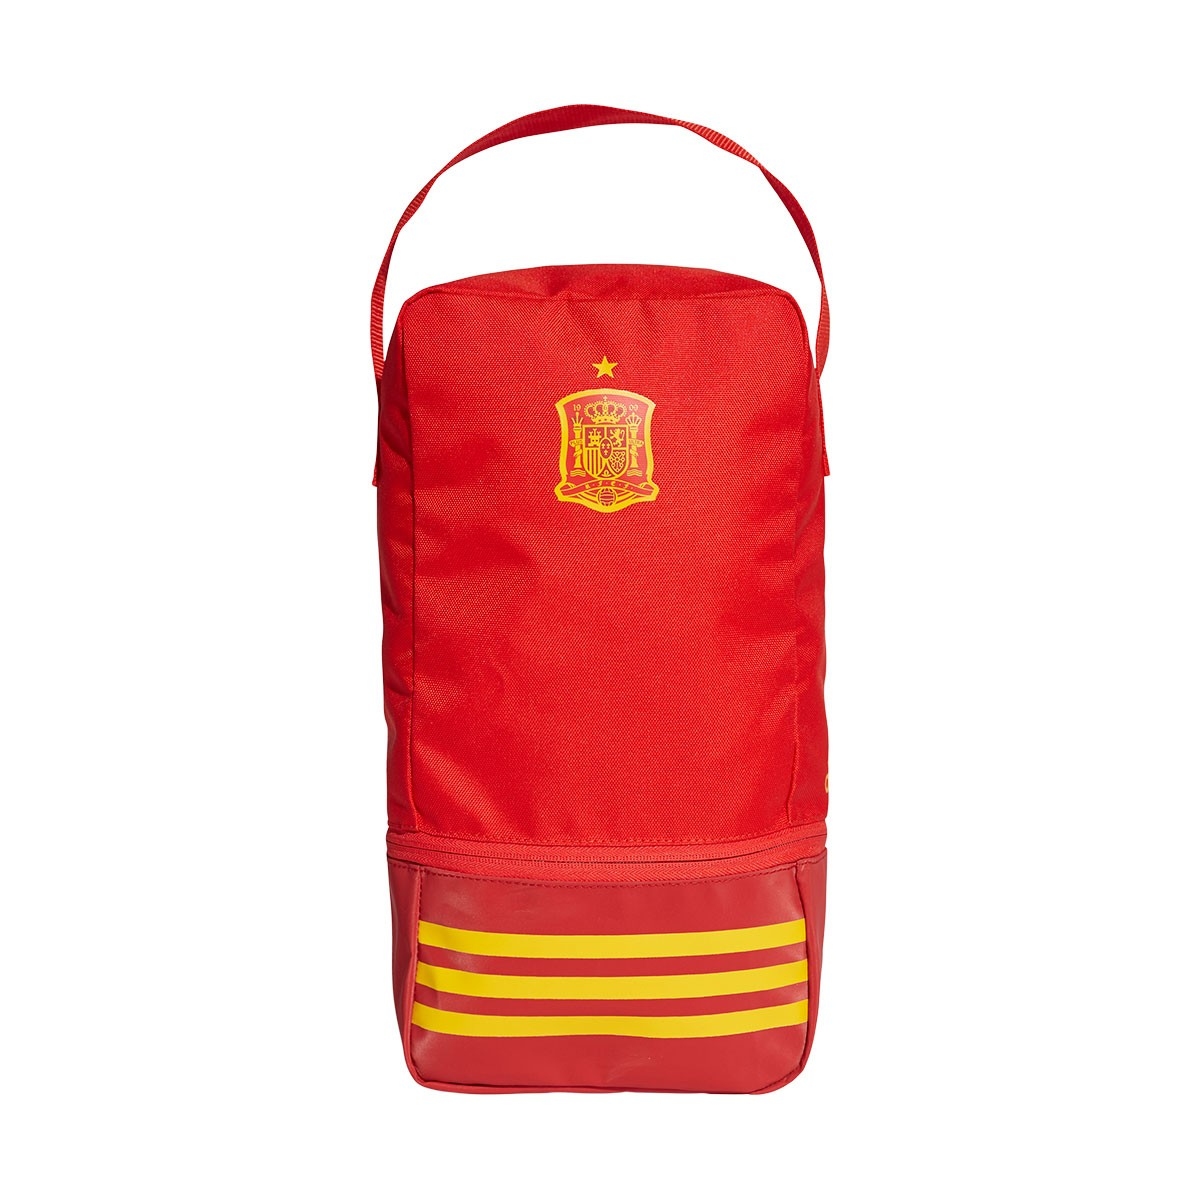 ae0e31c365 Boot bag adidas Spain 2017-2018 Power red-Gold - Soloporteros es ahora  Fútbol Emotion